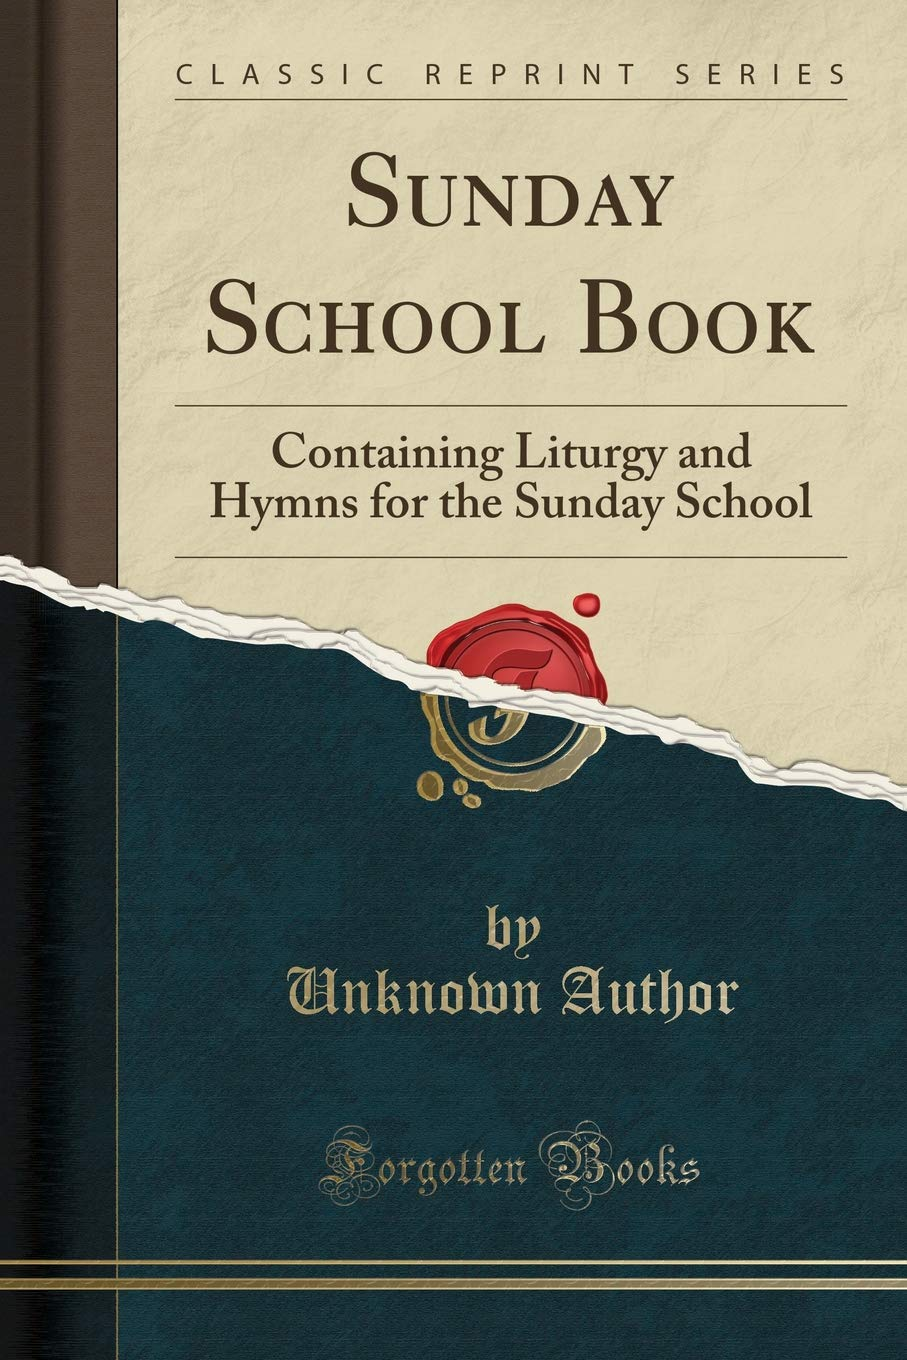 Sunday School Book: Containing Liturgy and Hymns for the